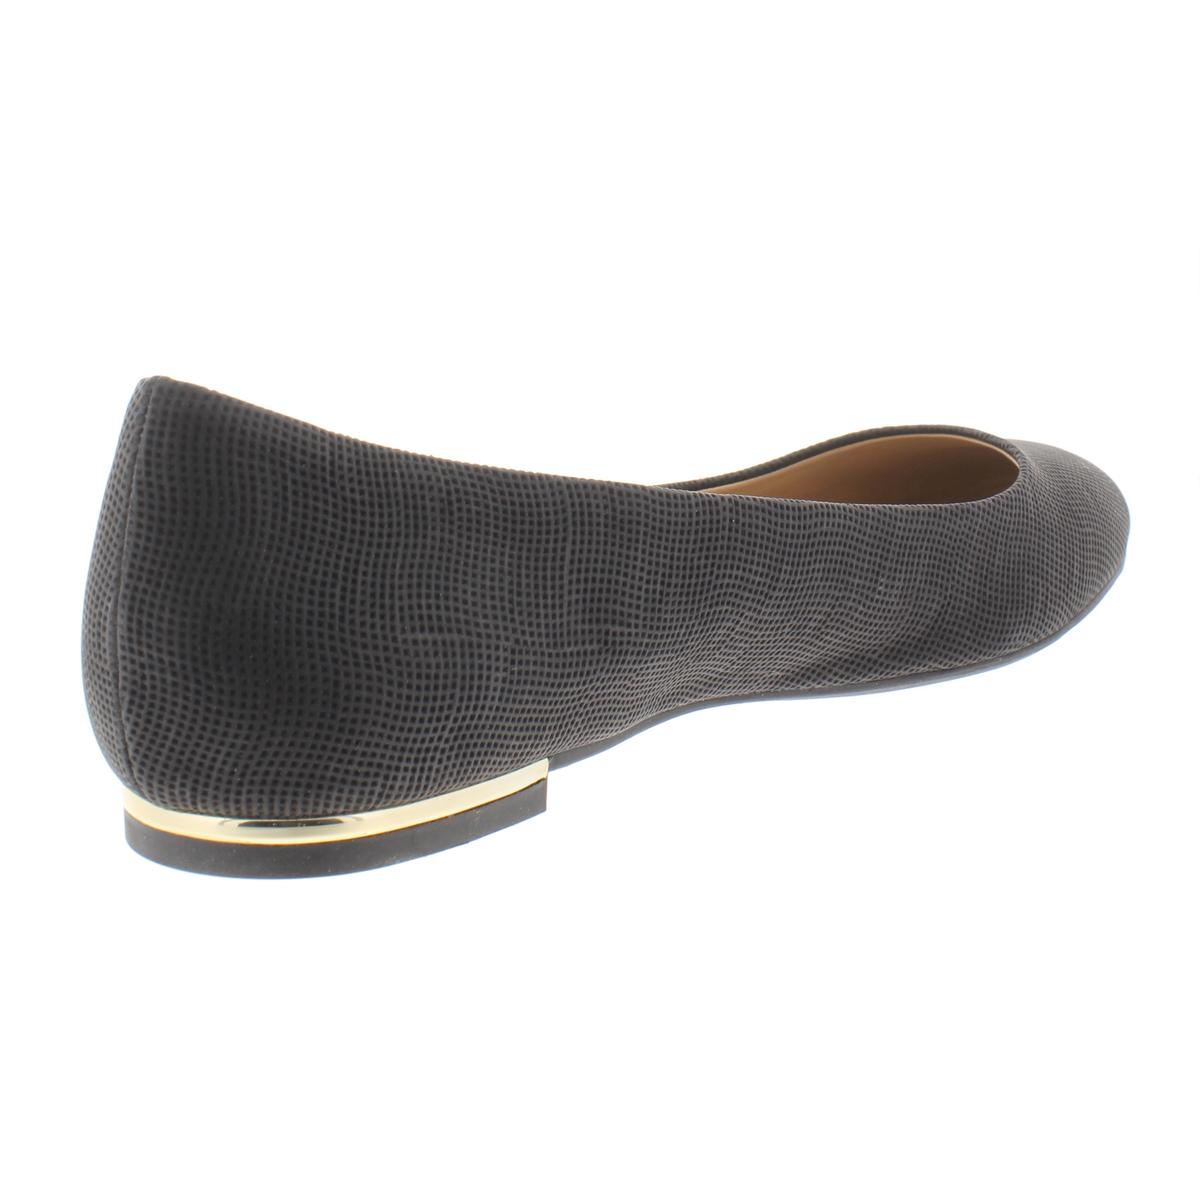 Call-It-Spring-Womens-Fibocchi-Round-Toe-Ballet-Flats-Shoes-BHFO-7540 thumbnail 4